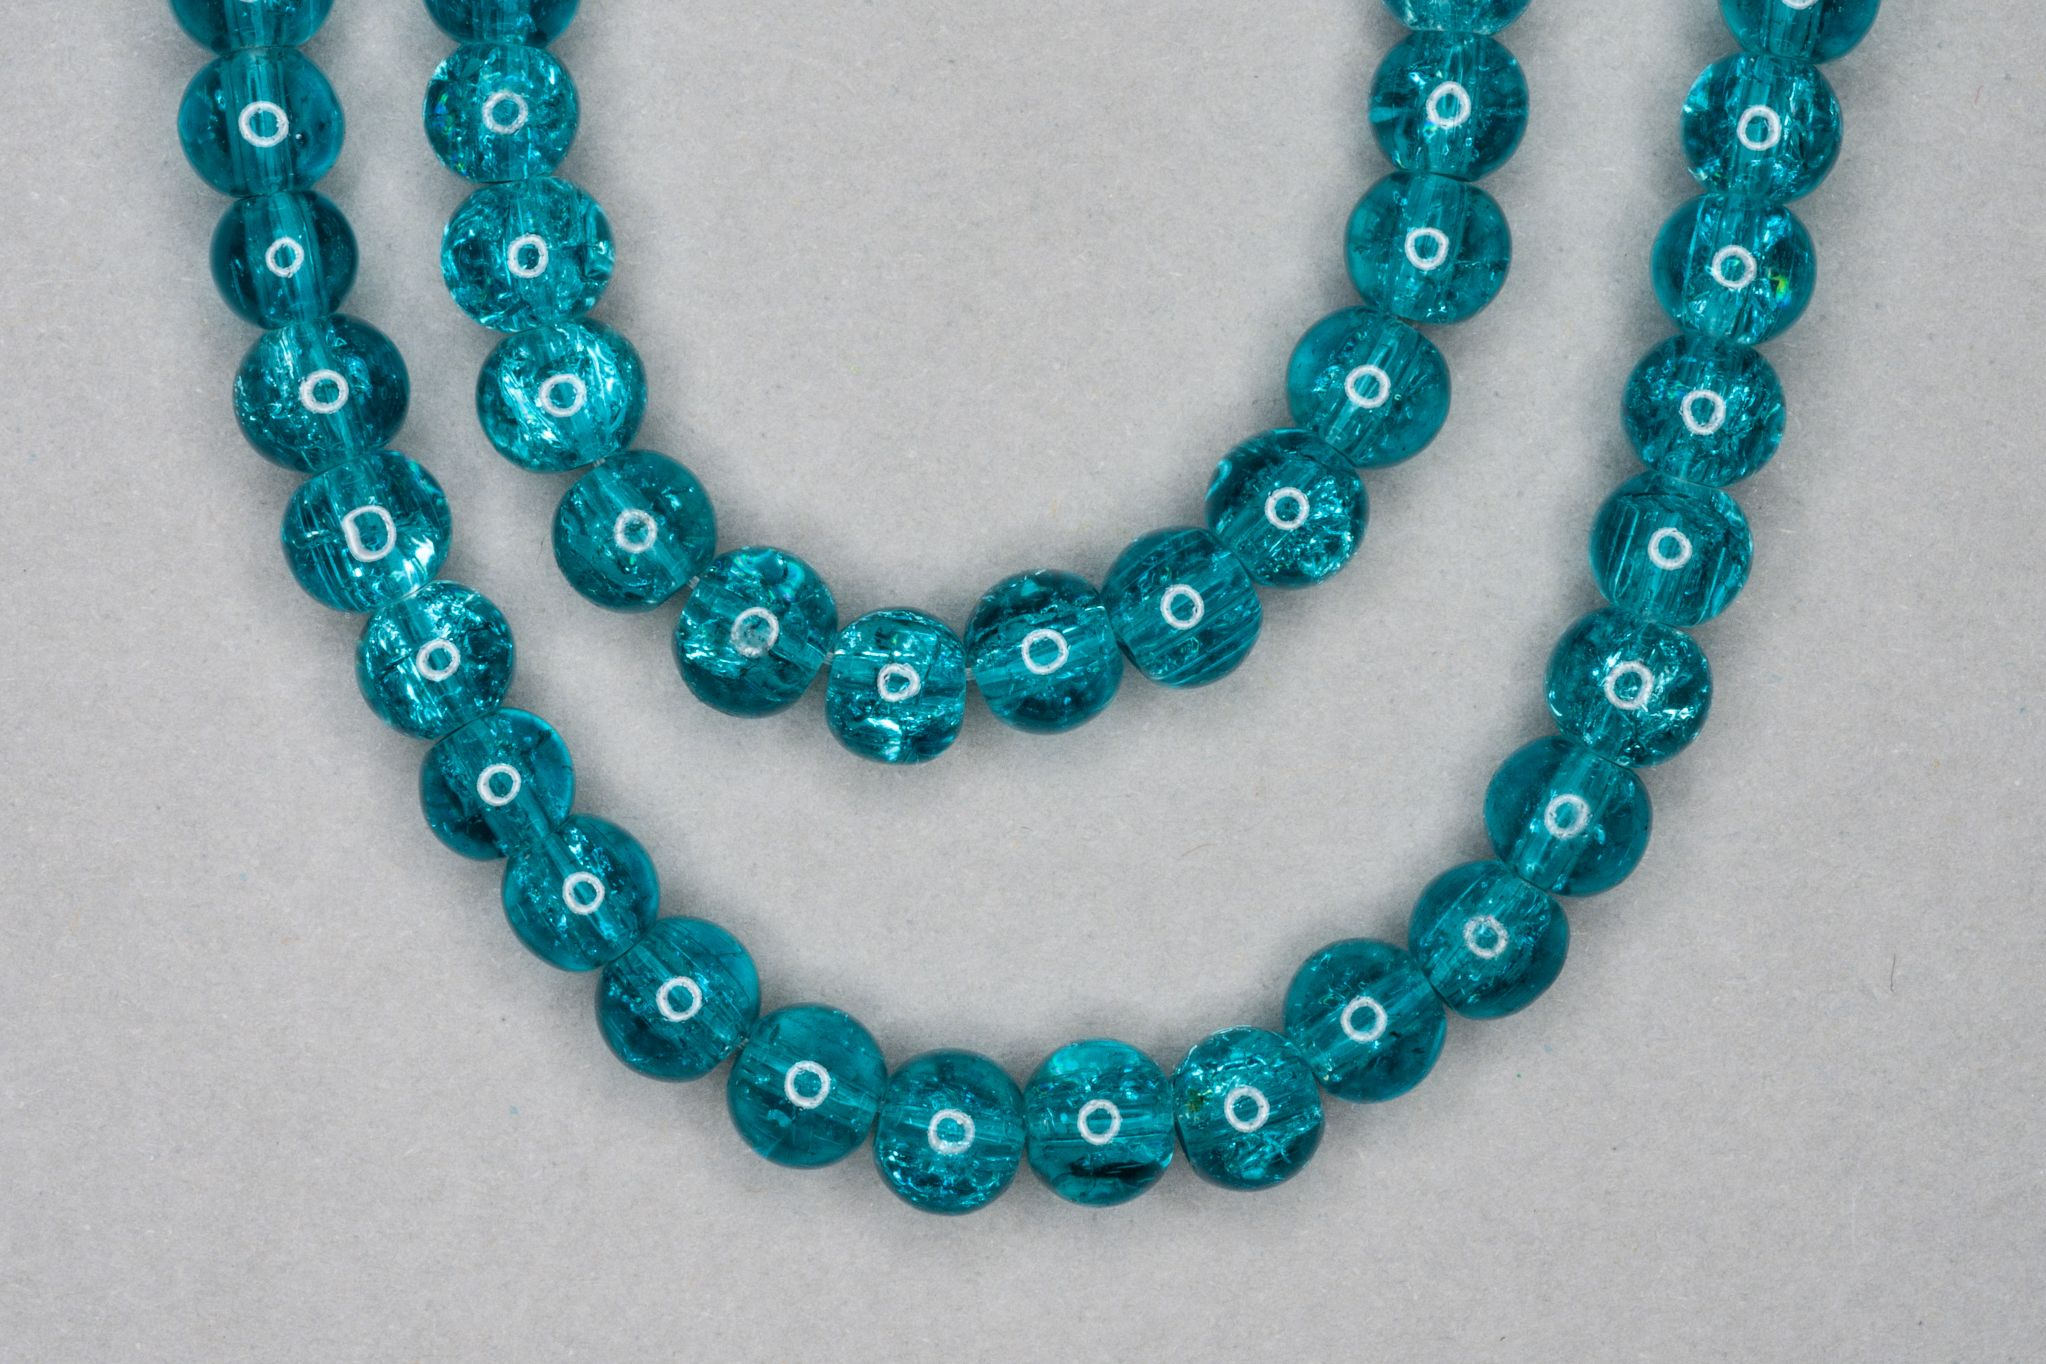 Teal Crackle Glass Beads